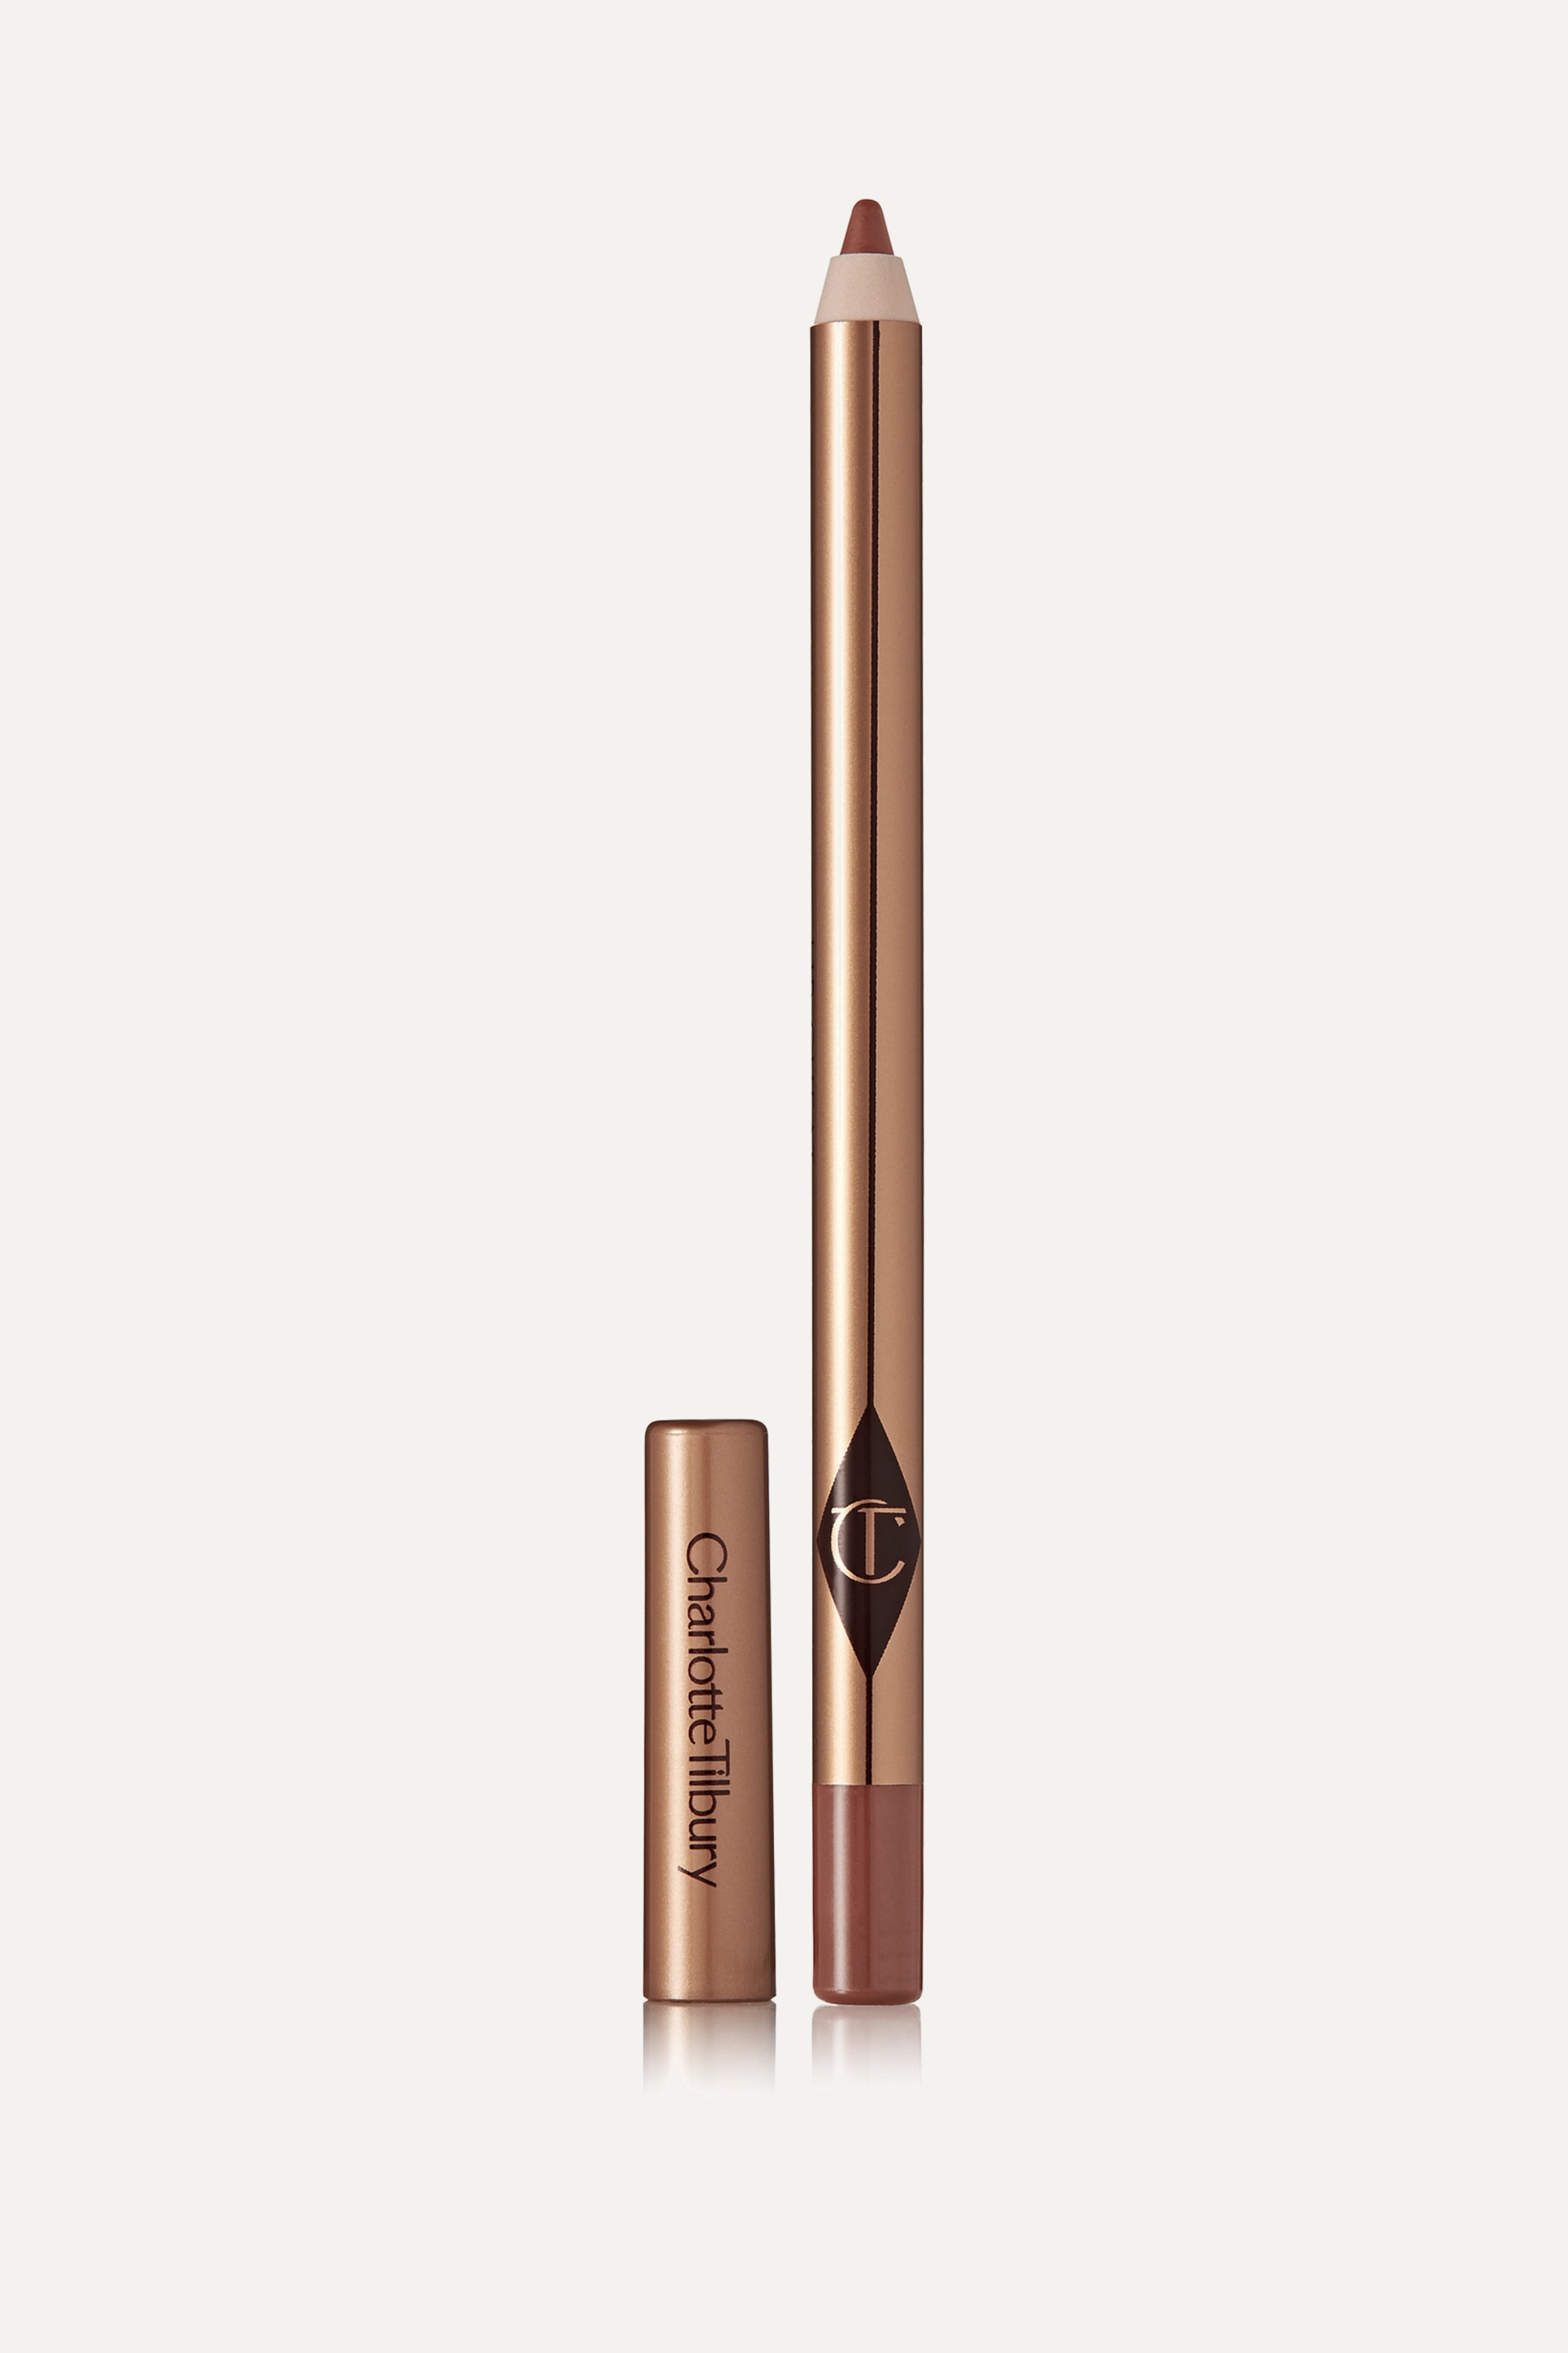 Charlotte Tilbury Lip Cheat Lip Liner - Iconic Nude